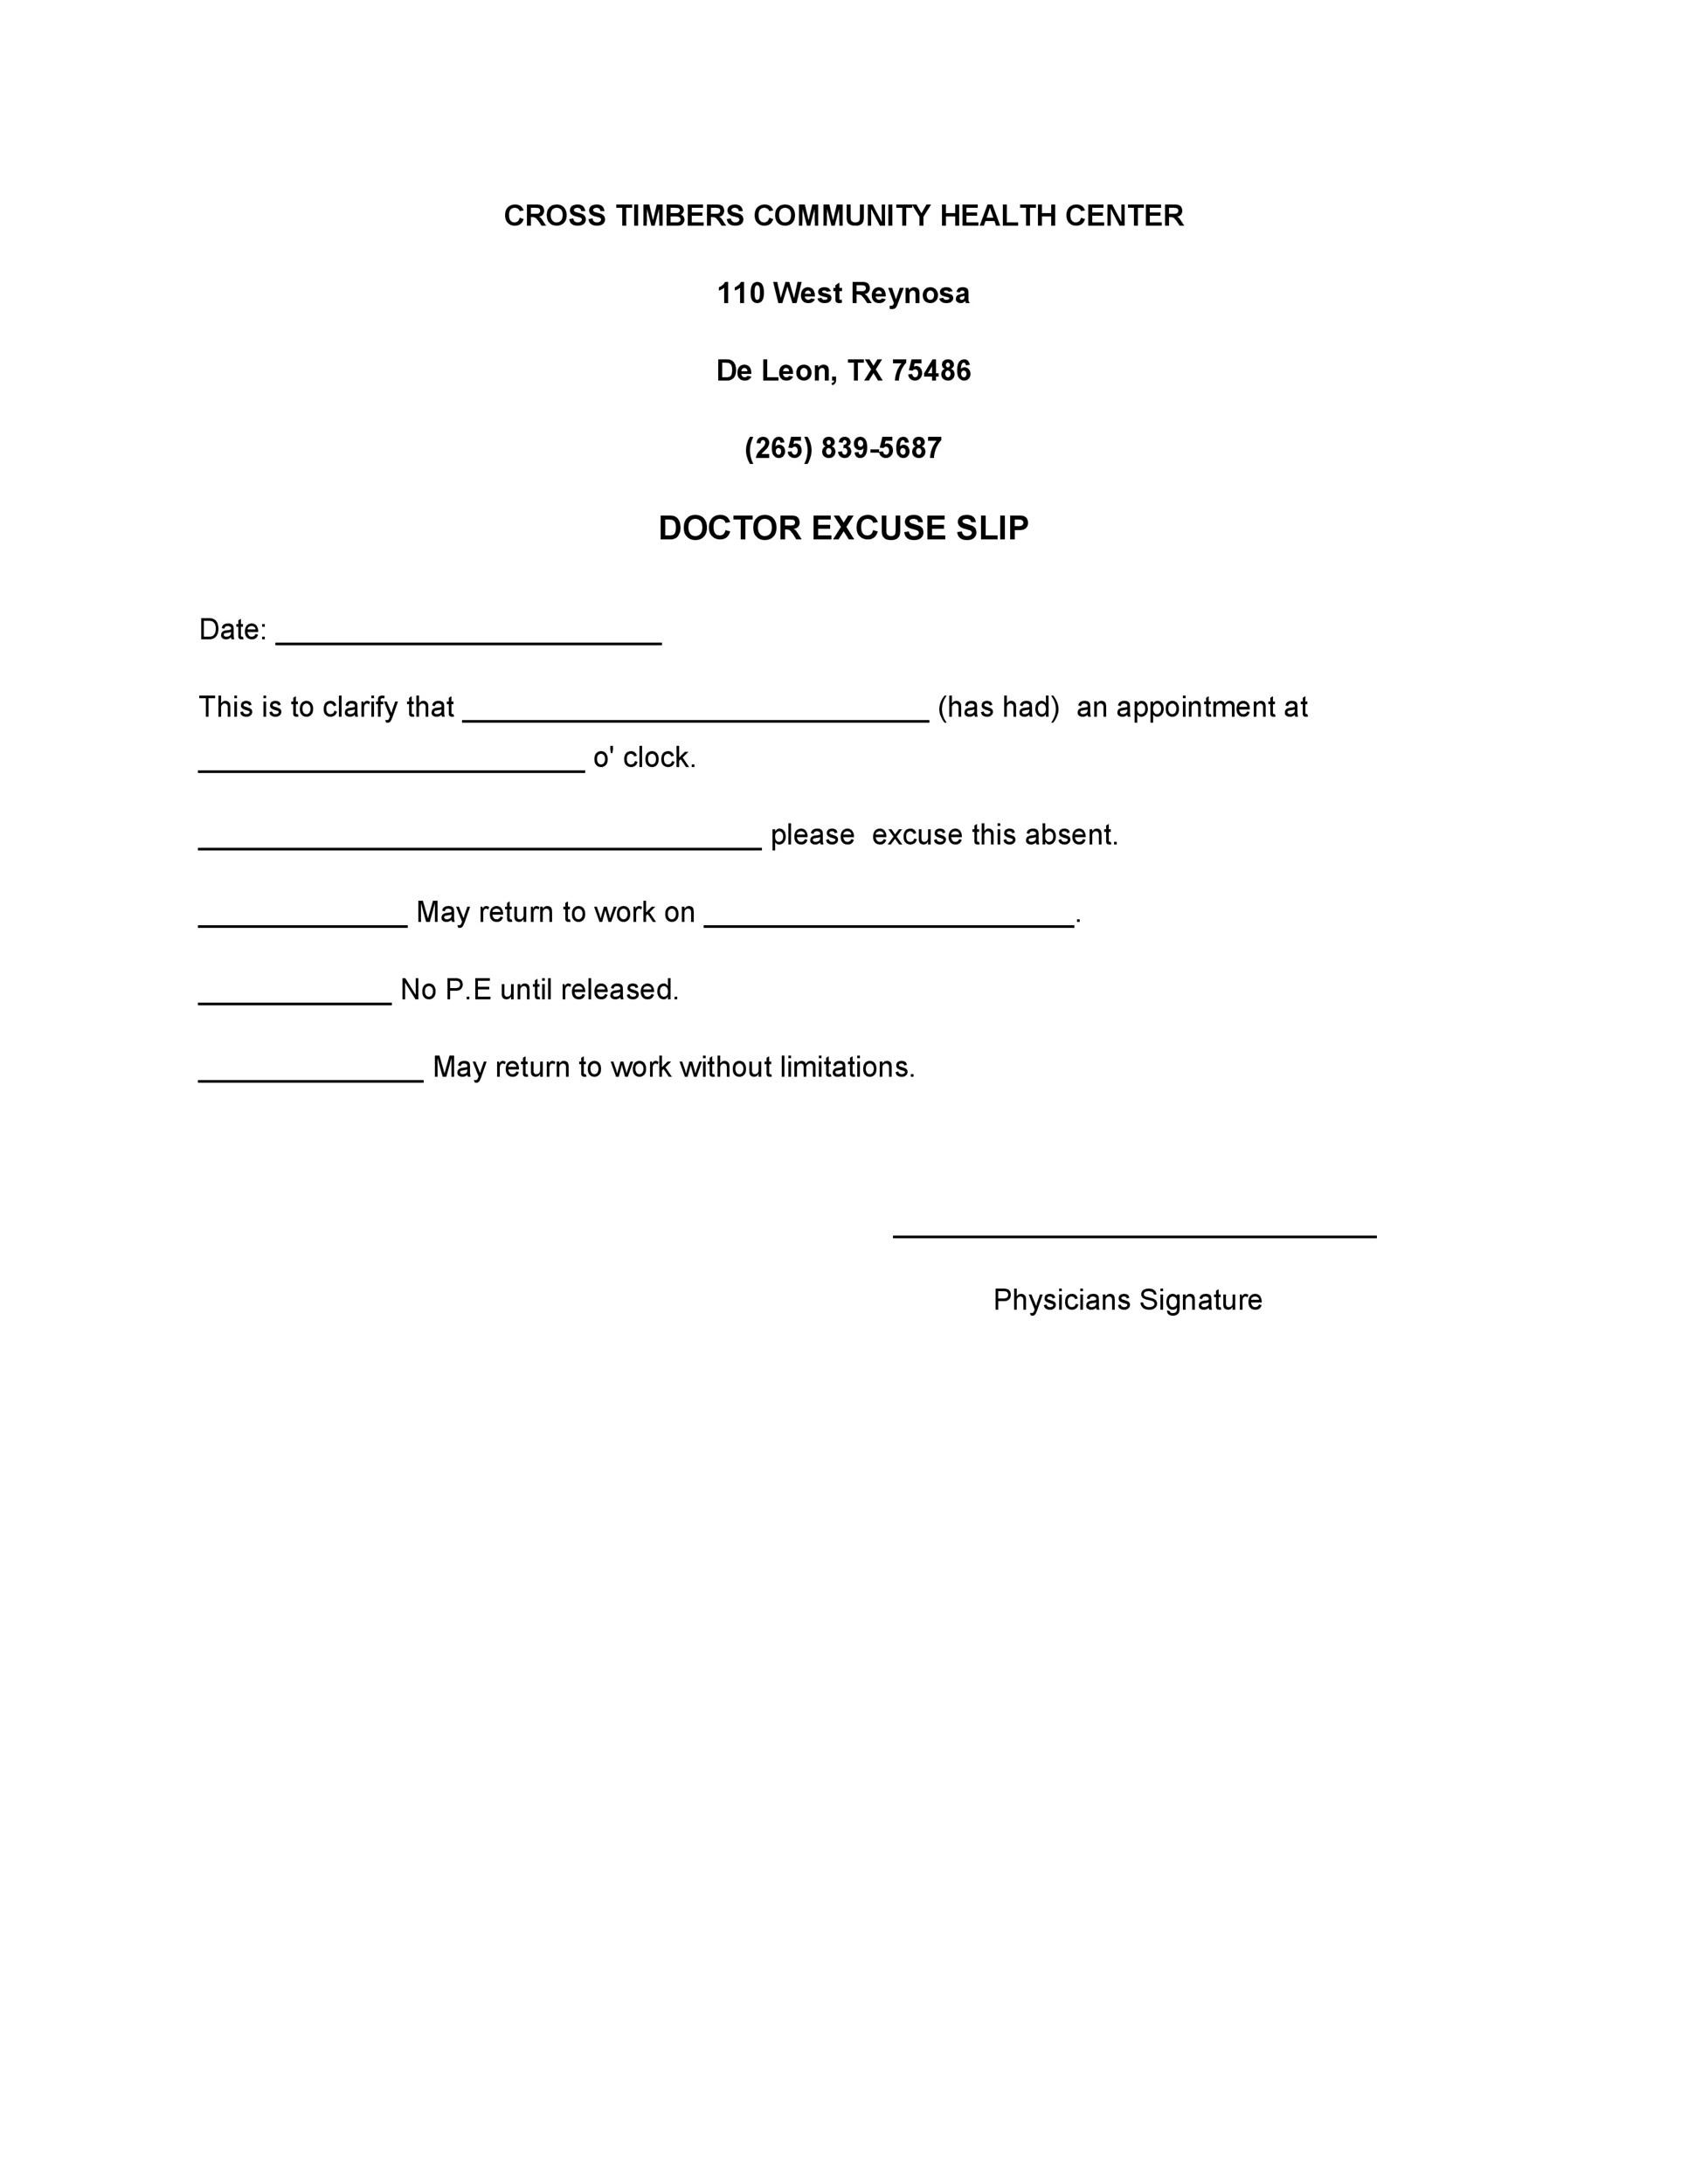 25+ Free Doctor Note / Excuse Templates ᐅ TemplateLab